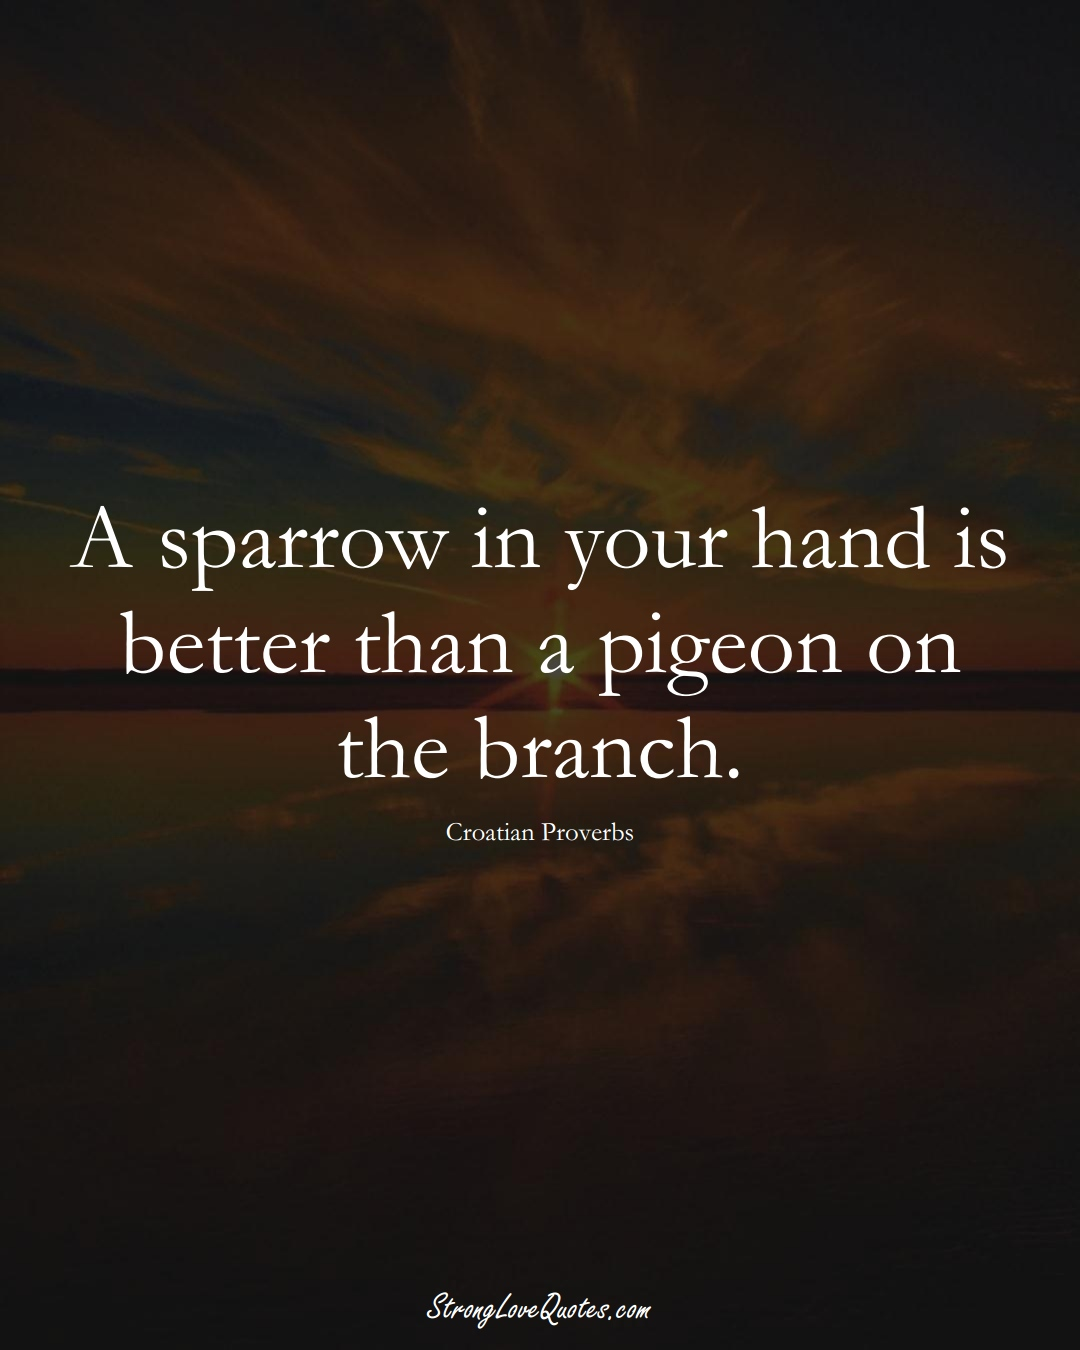 A sparrow in your hand is better than a pigeon on the branch. (Croatian Sayings);  #EuropeanSayings